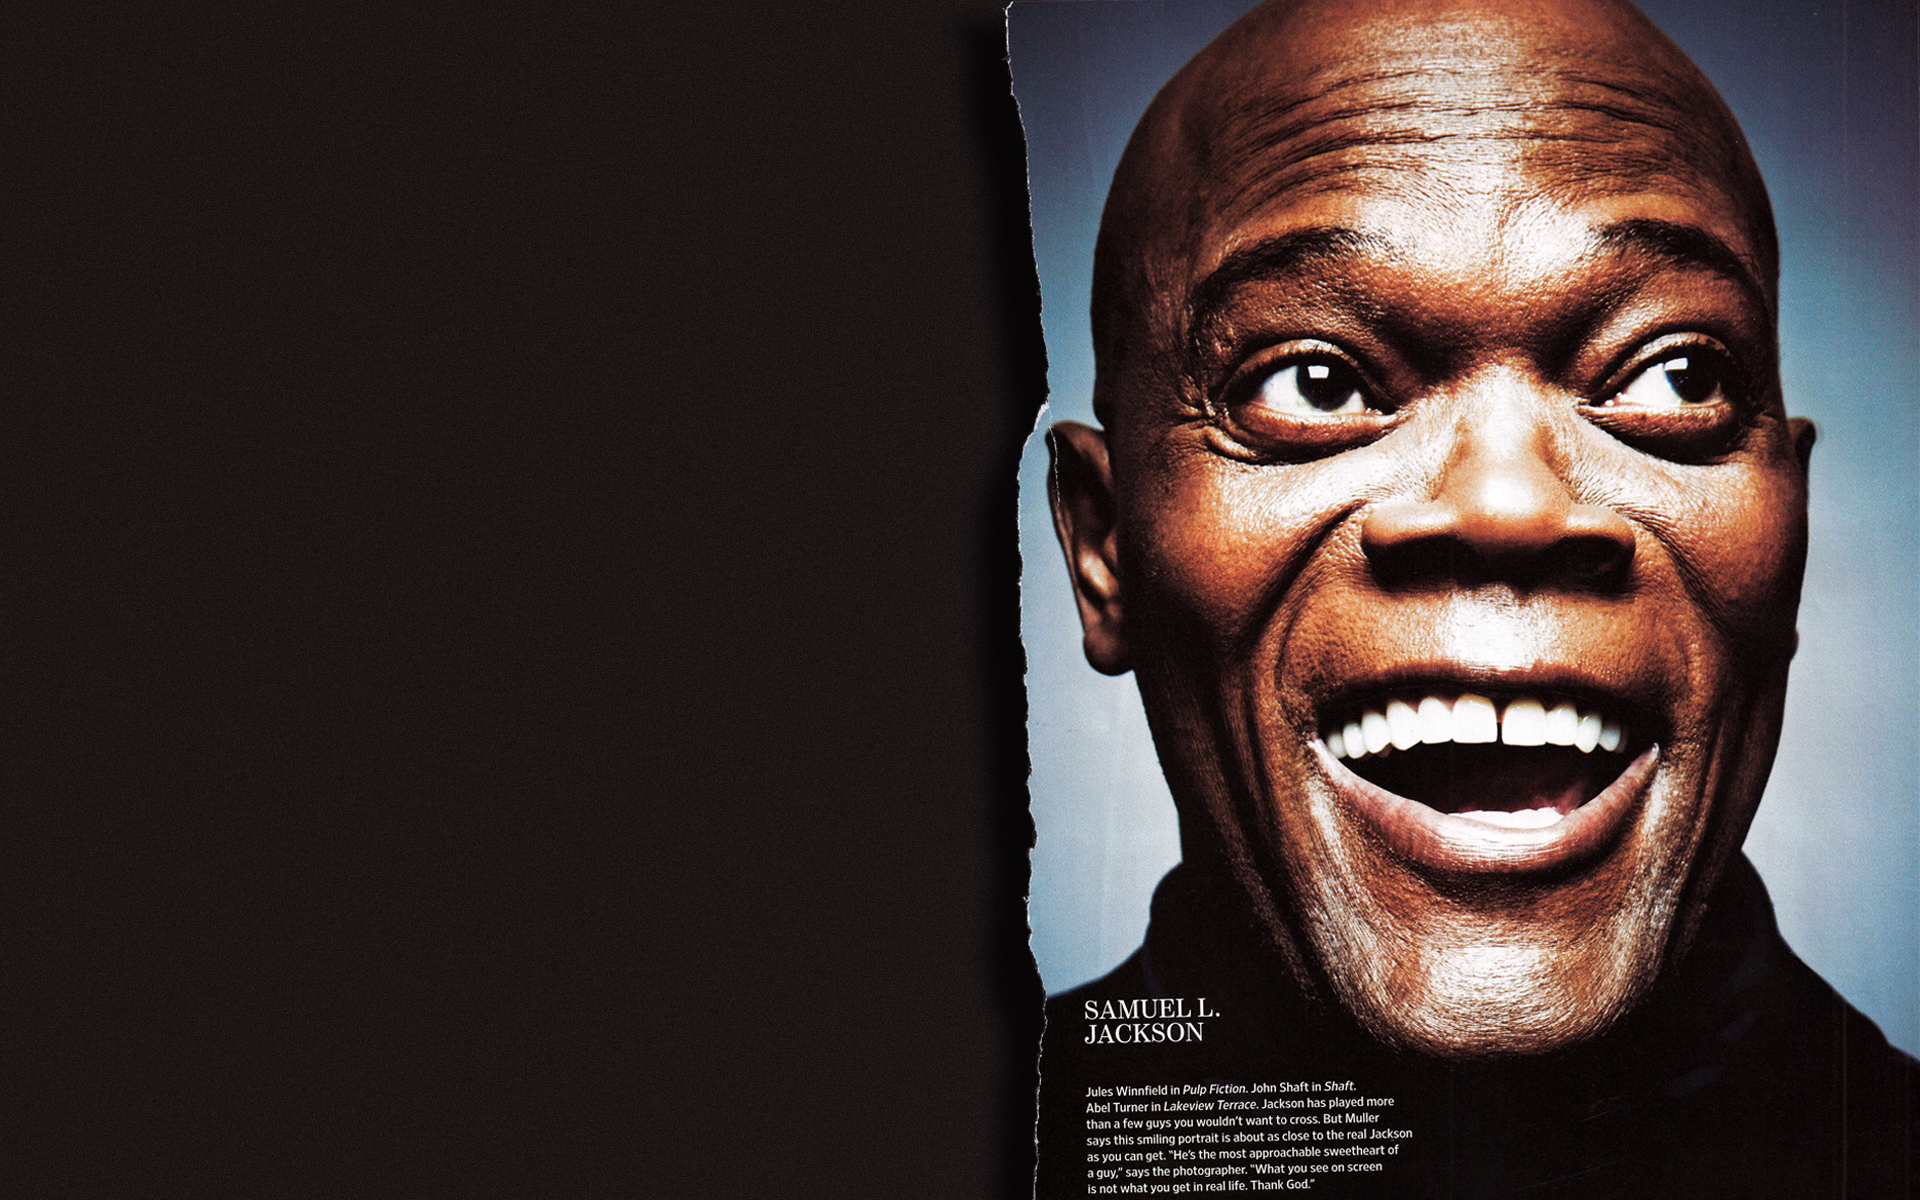 Pictures of Samuel L Jackson   Pictures Of Celebrities 1920x1200